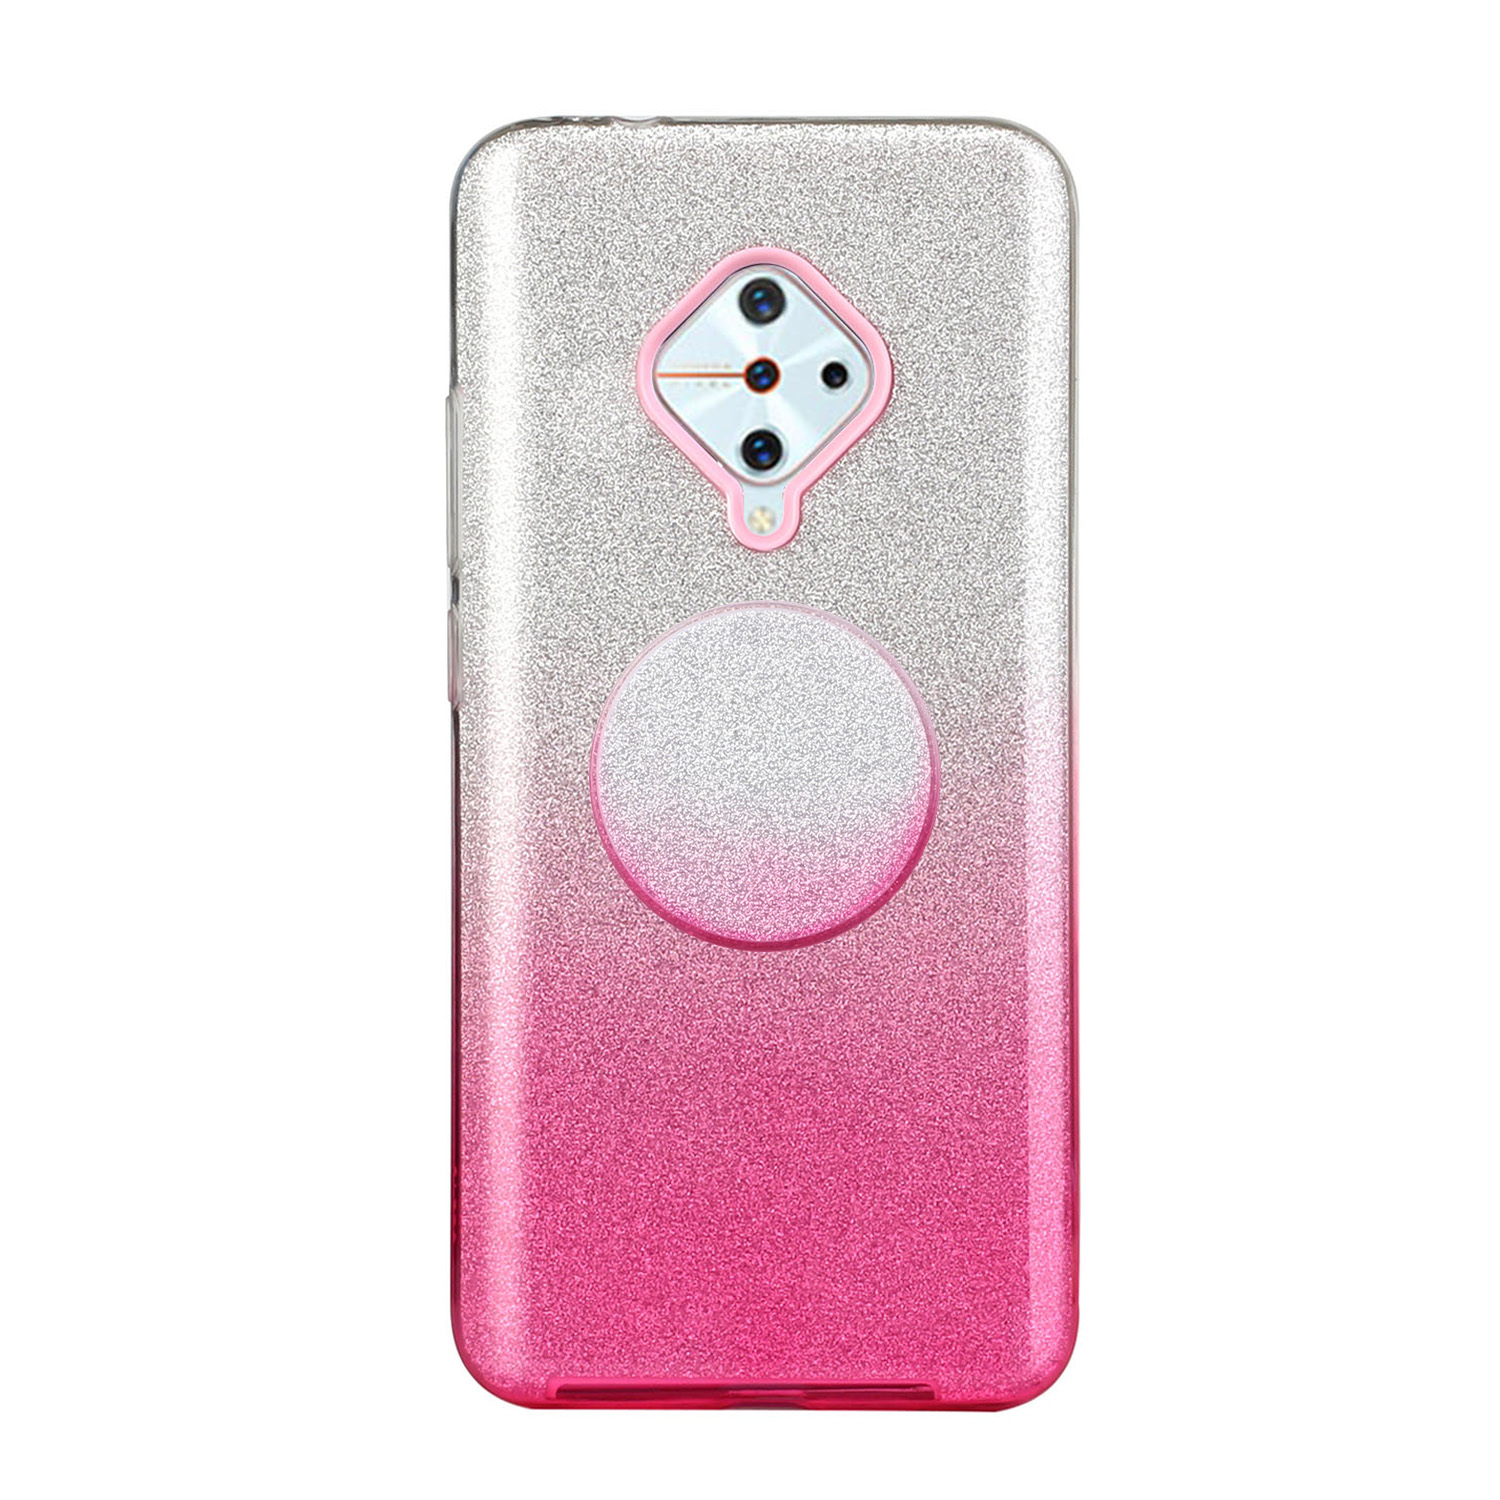 For VIVO Y91/Y93/Y95 with hole/V17/S1 Pro/Y95 Phone Case Gradient Color Glitter Powder Phone Cover with Airbag Bracket Pink